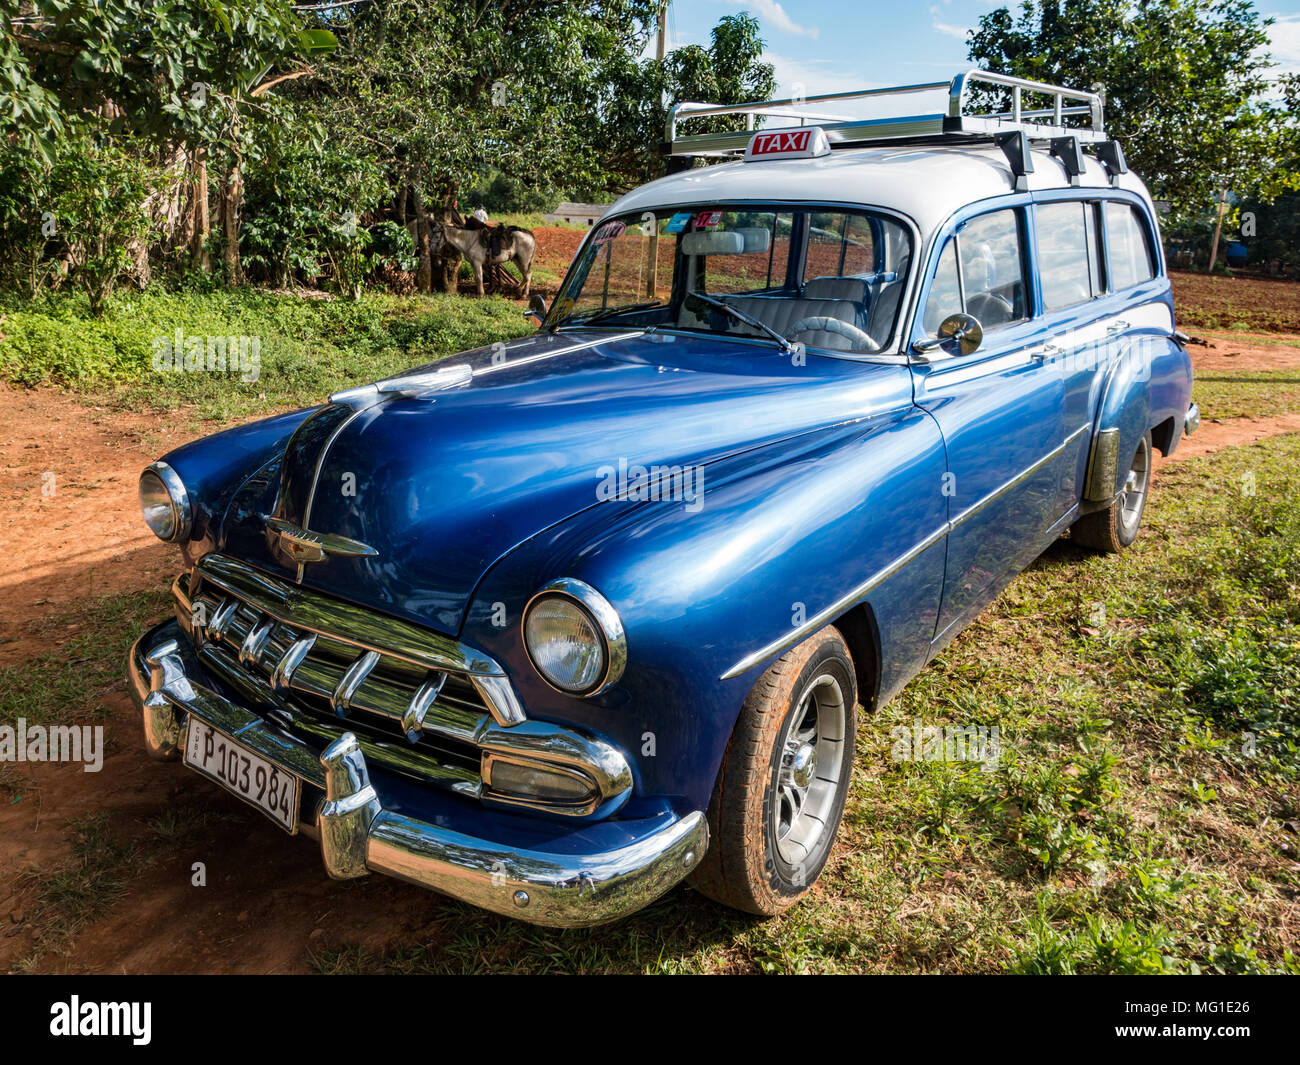 Vinalis, Cuba, Nov 23, 2017 - Classic American blue 1950's Chevrolet station wagon - Stock Image